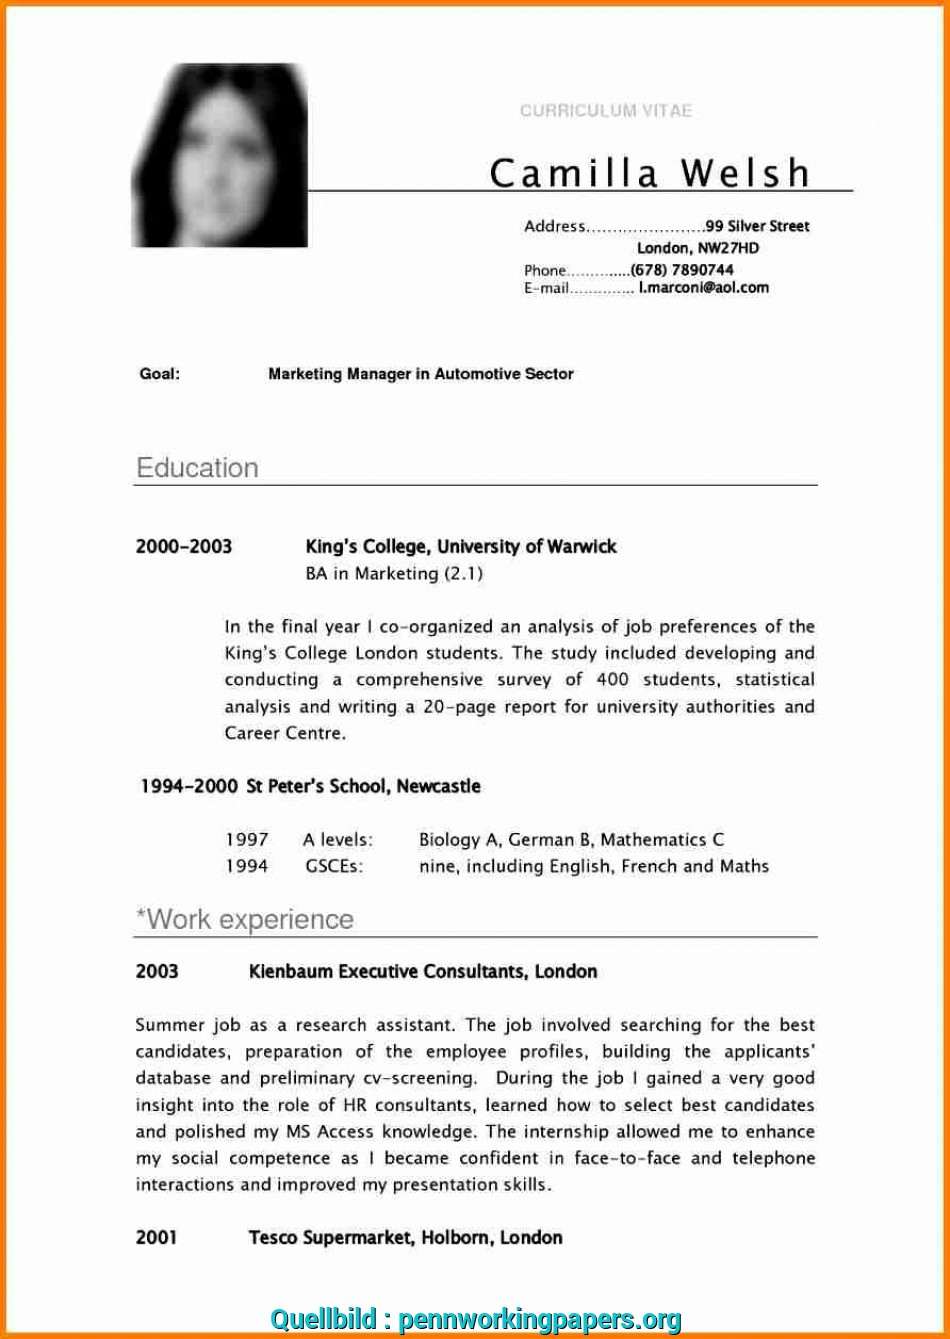 Prime English Cv Example.Excellent-Resume-Cv-Example-13-English-Cv ...